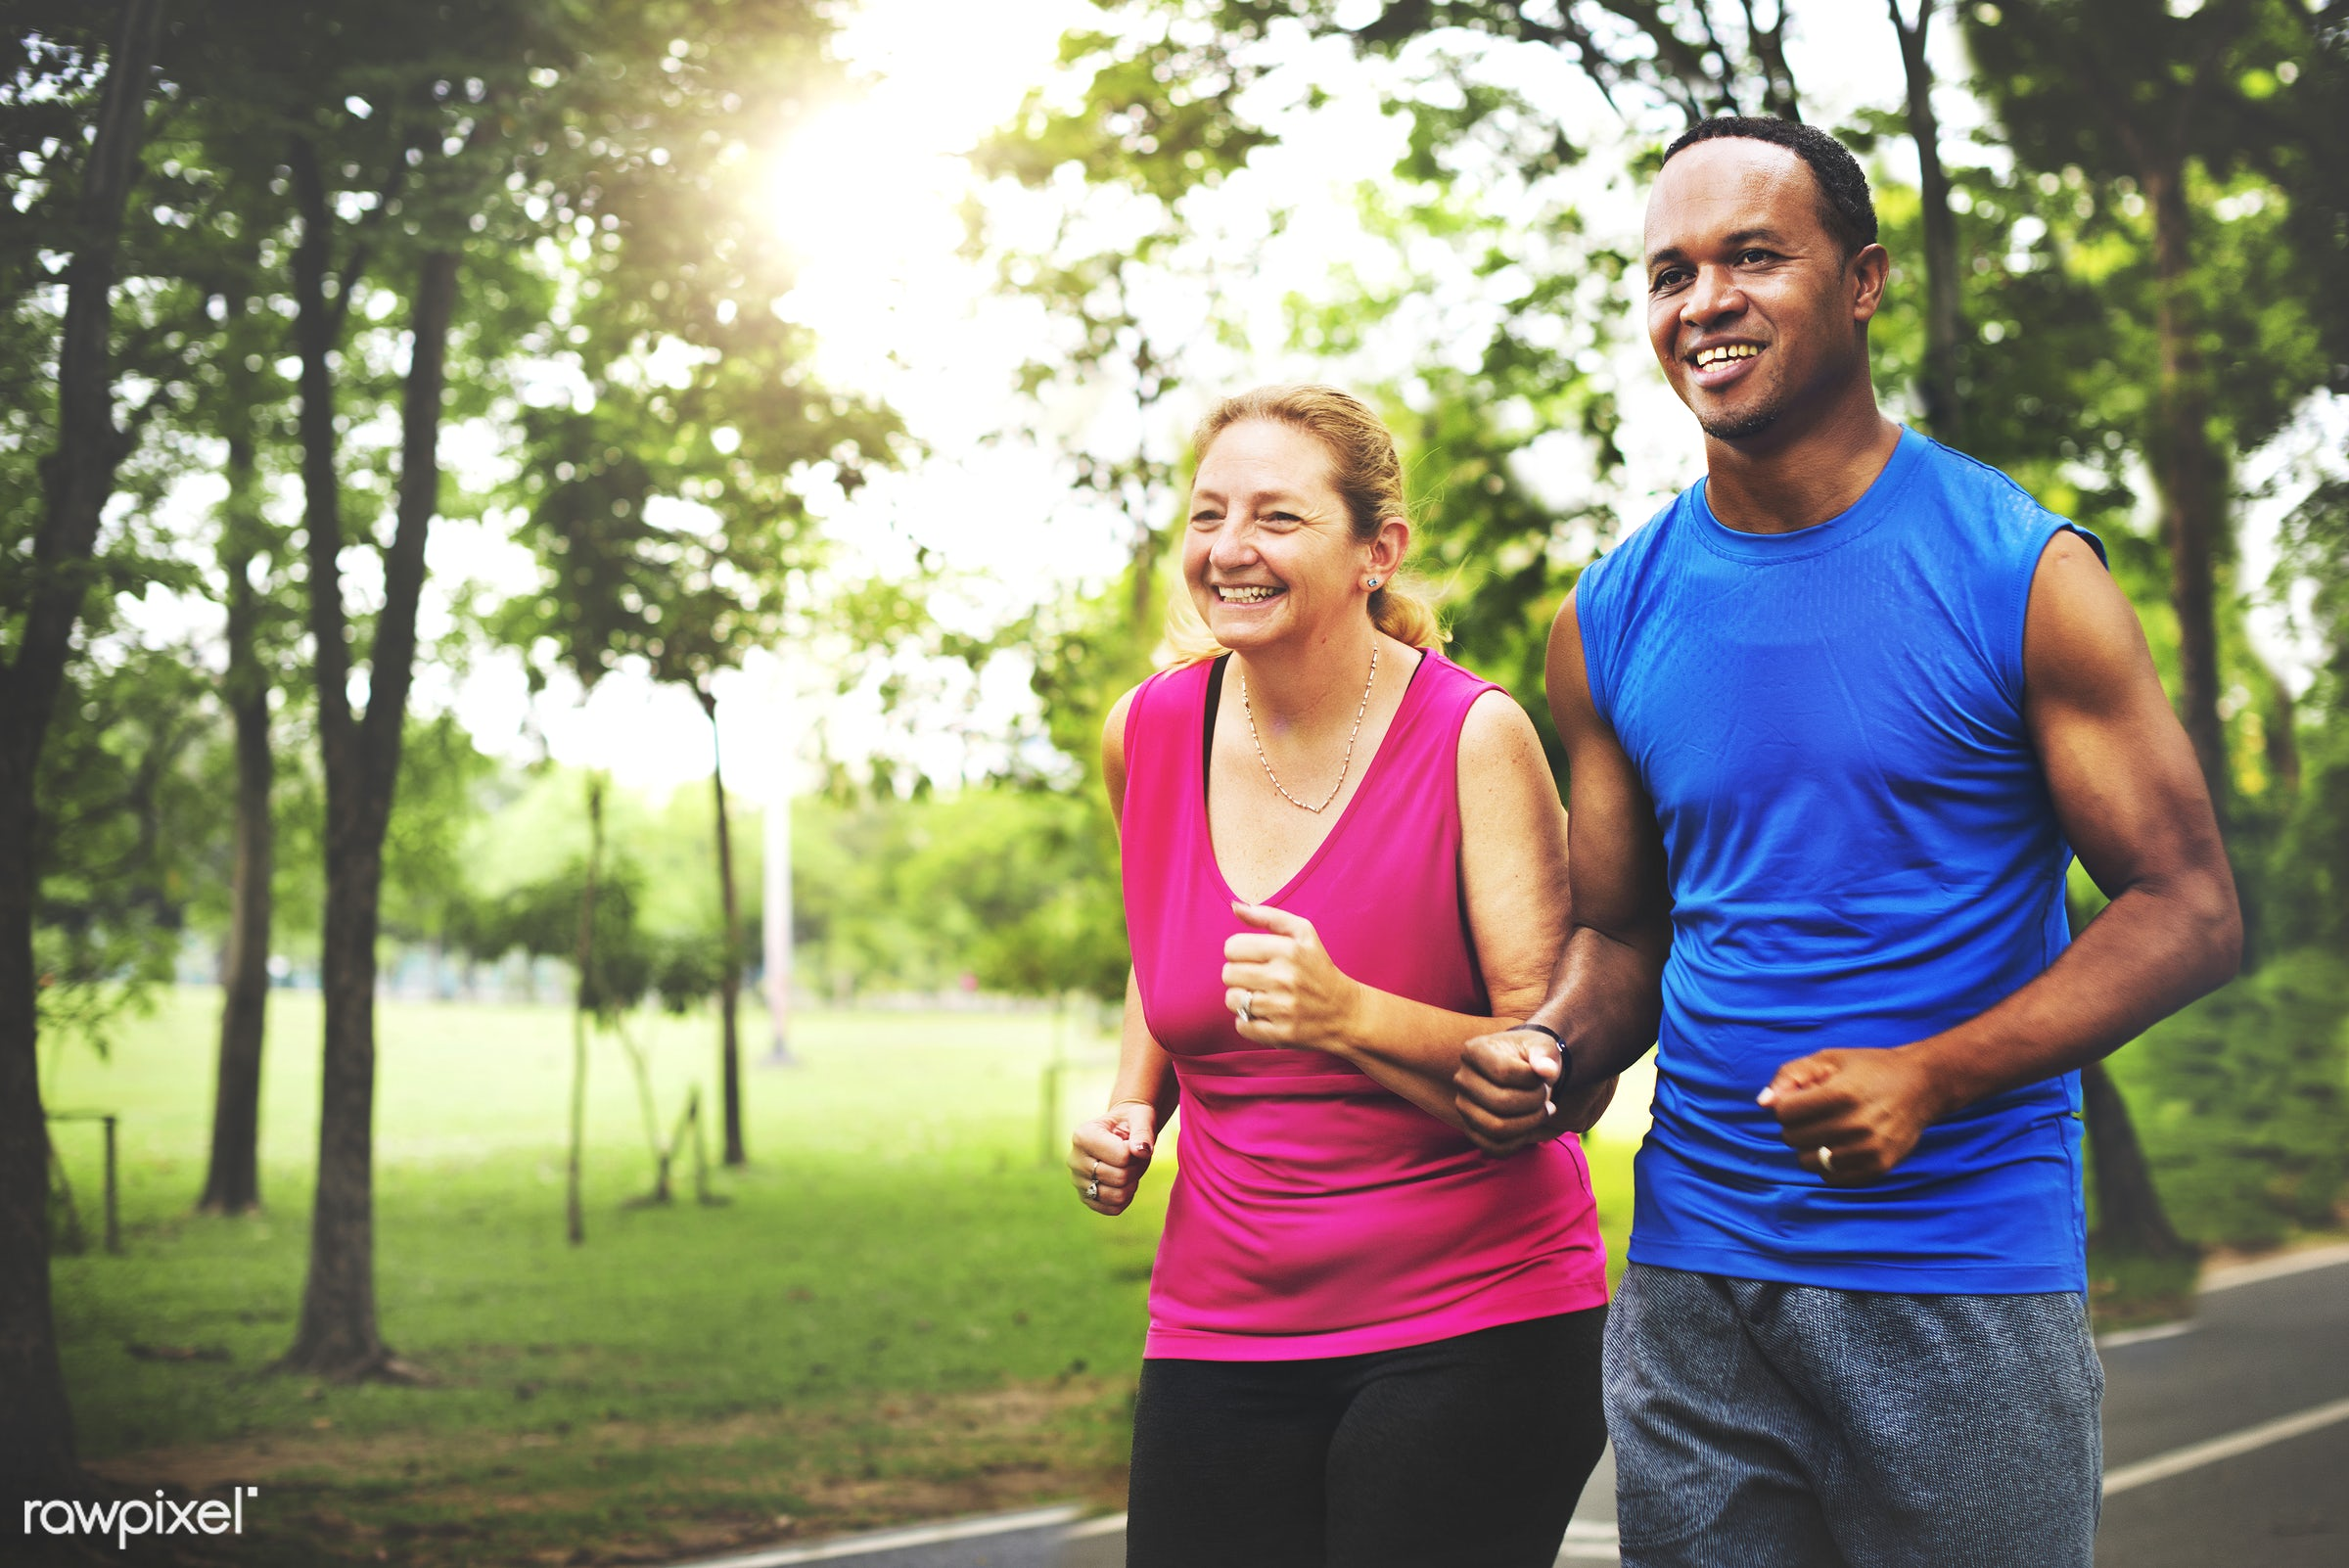 african, african descent, caucasian, cheerful, clothing, couple, exercise, exercising, form, garden, green, happiness, happy...